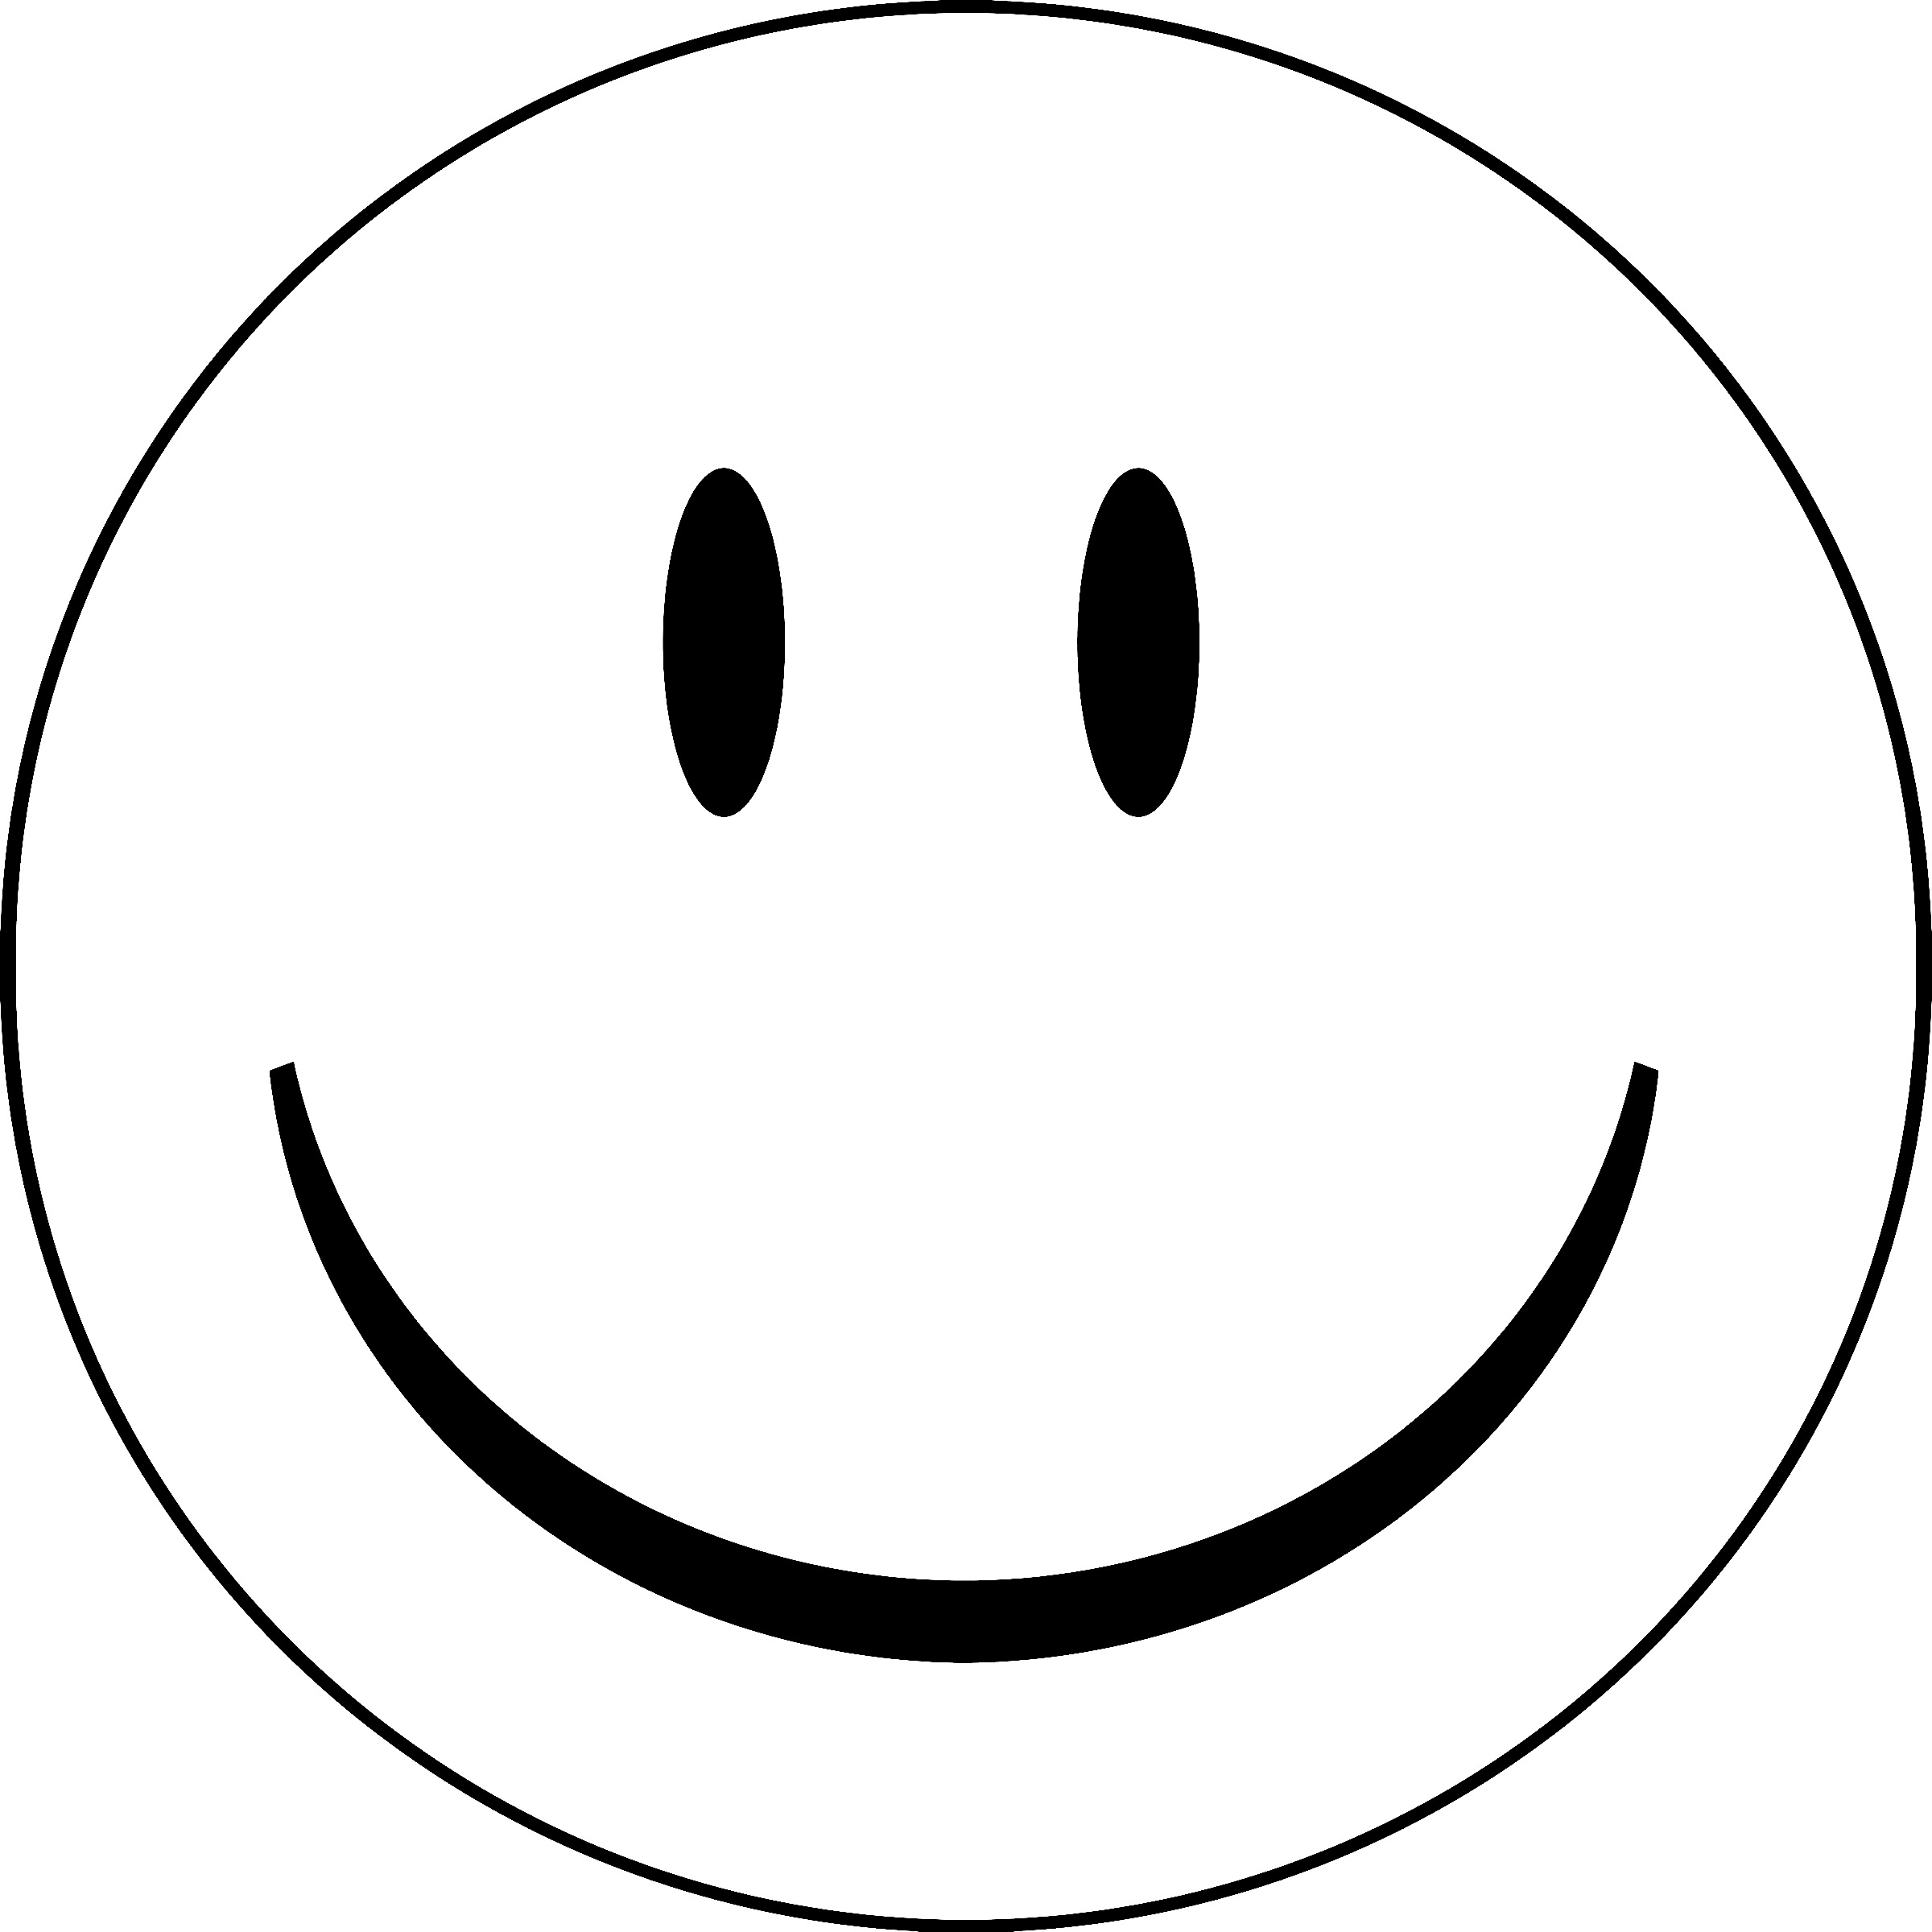 Smiley face outline clipart clip art library stock Happy Face Outline | Free download best Happy Face Outline ... clip art library stock